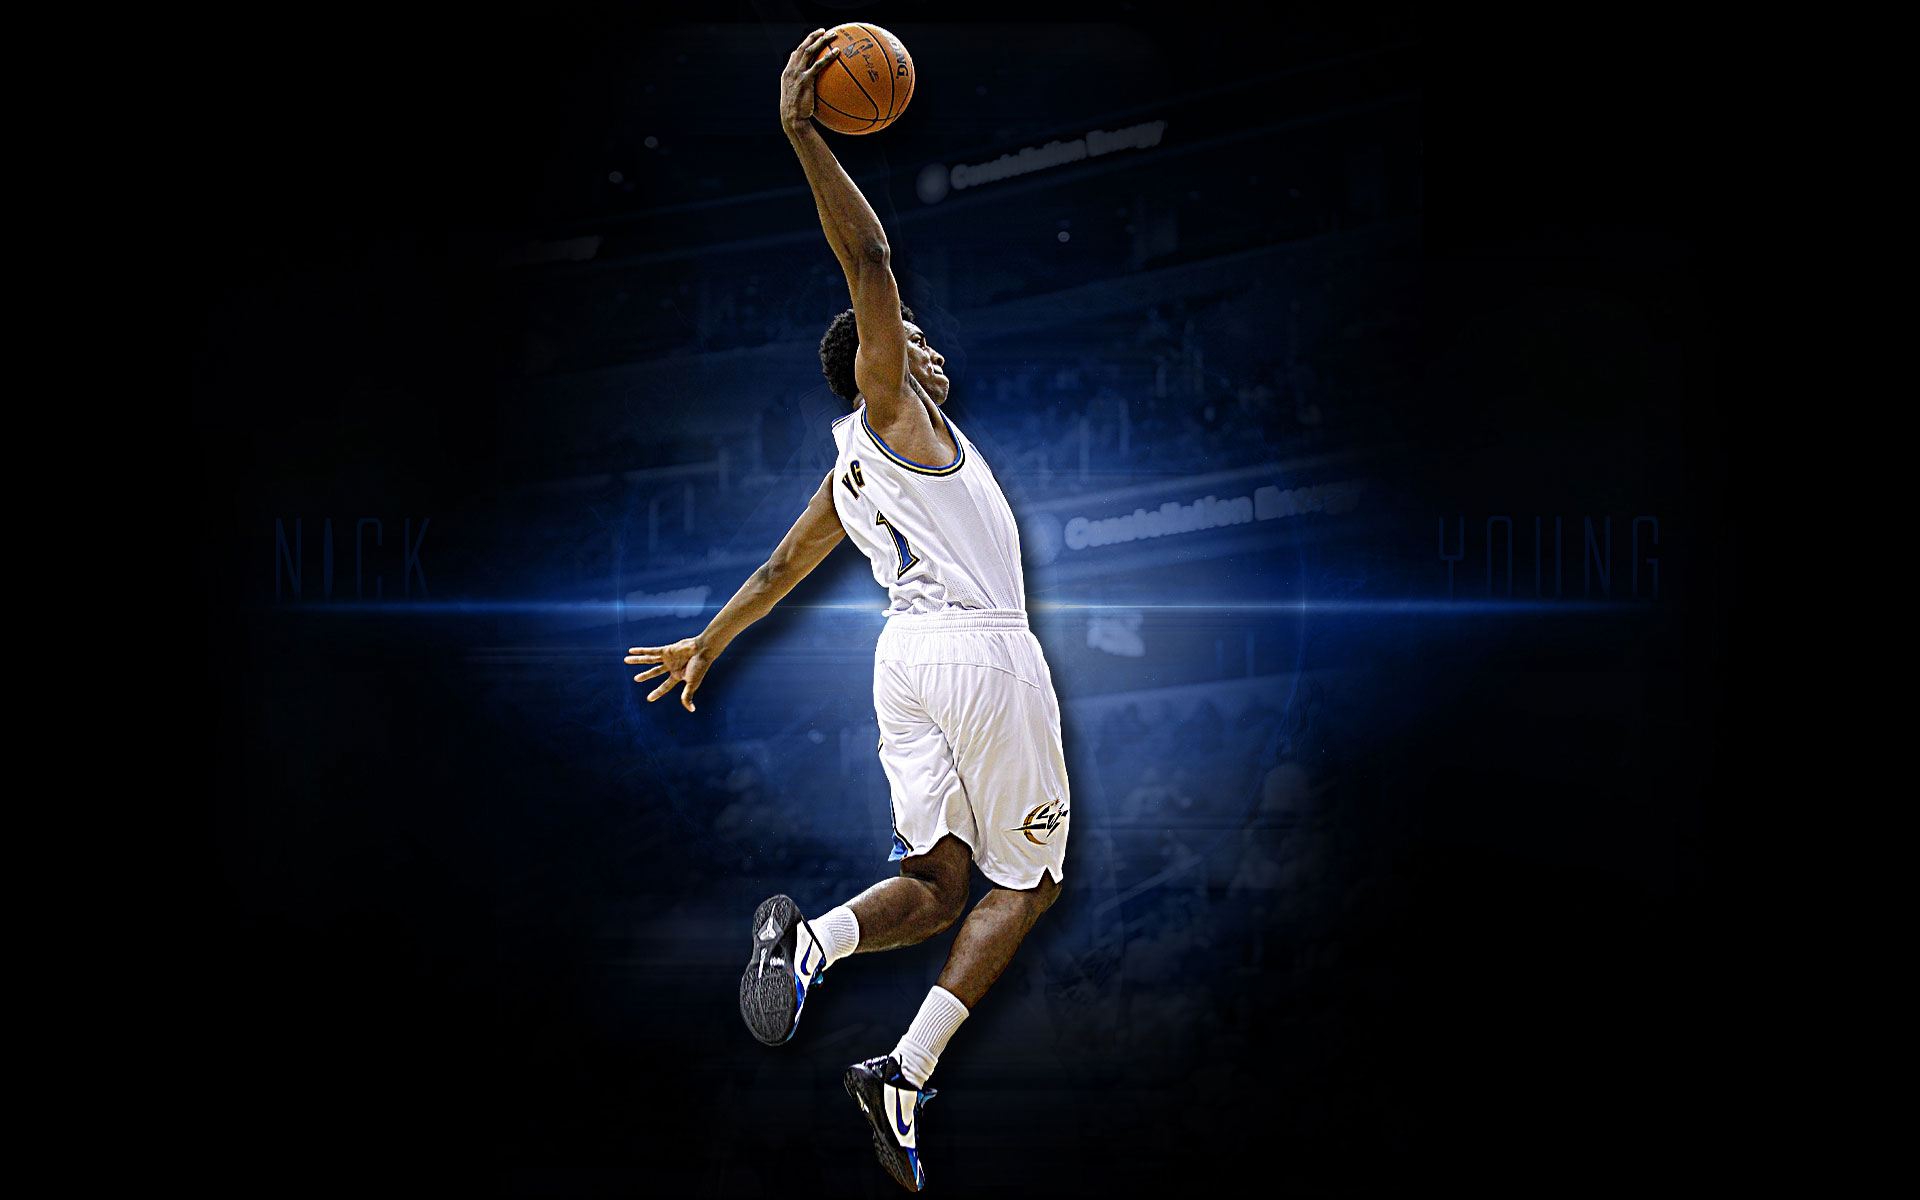 Nick Young Wizards Dunk Widescreen Wallpaper Basketball 1920x1200